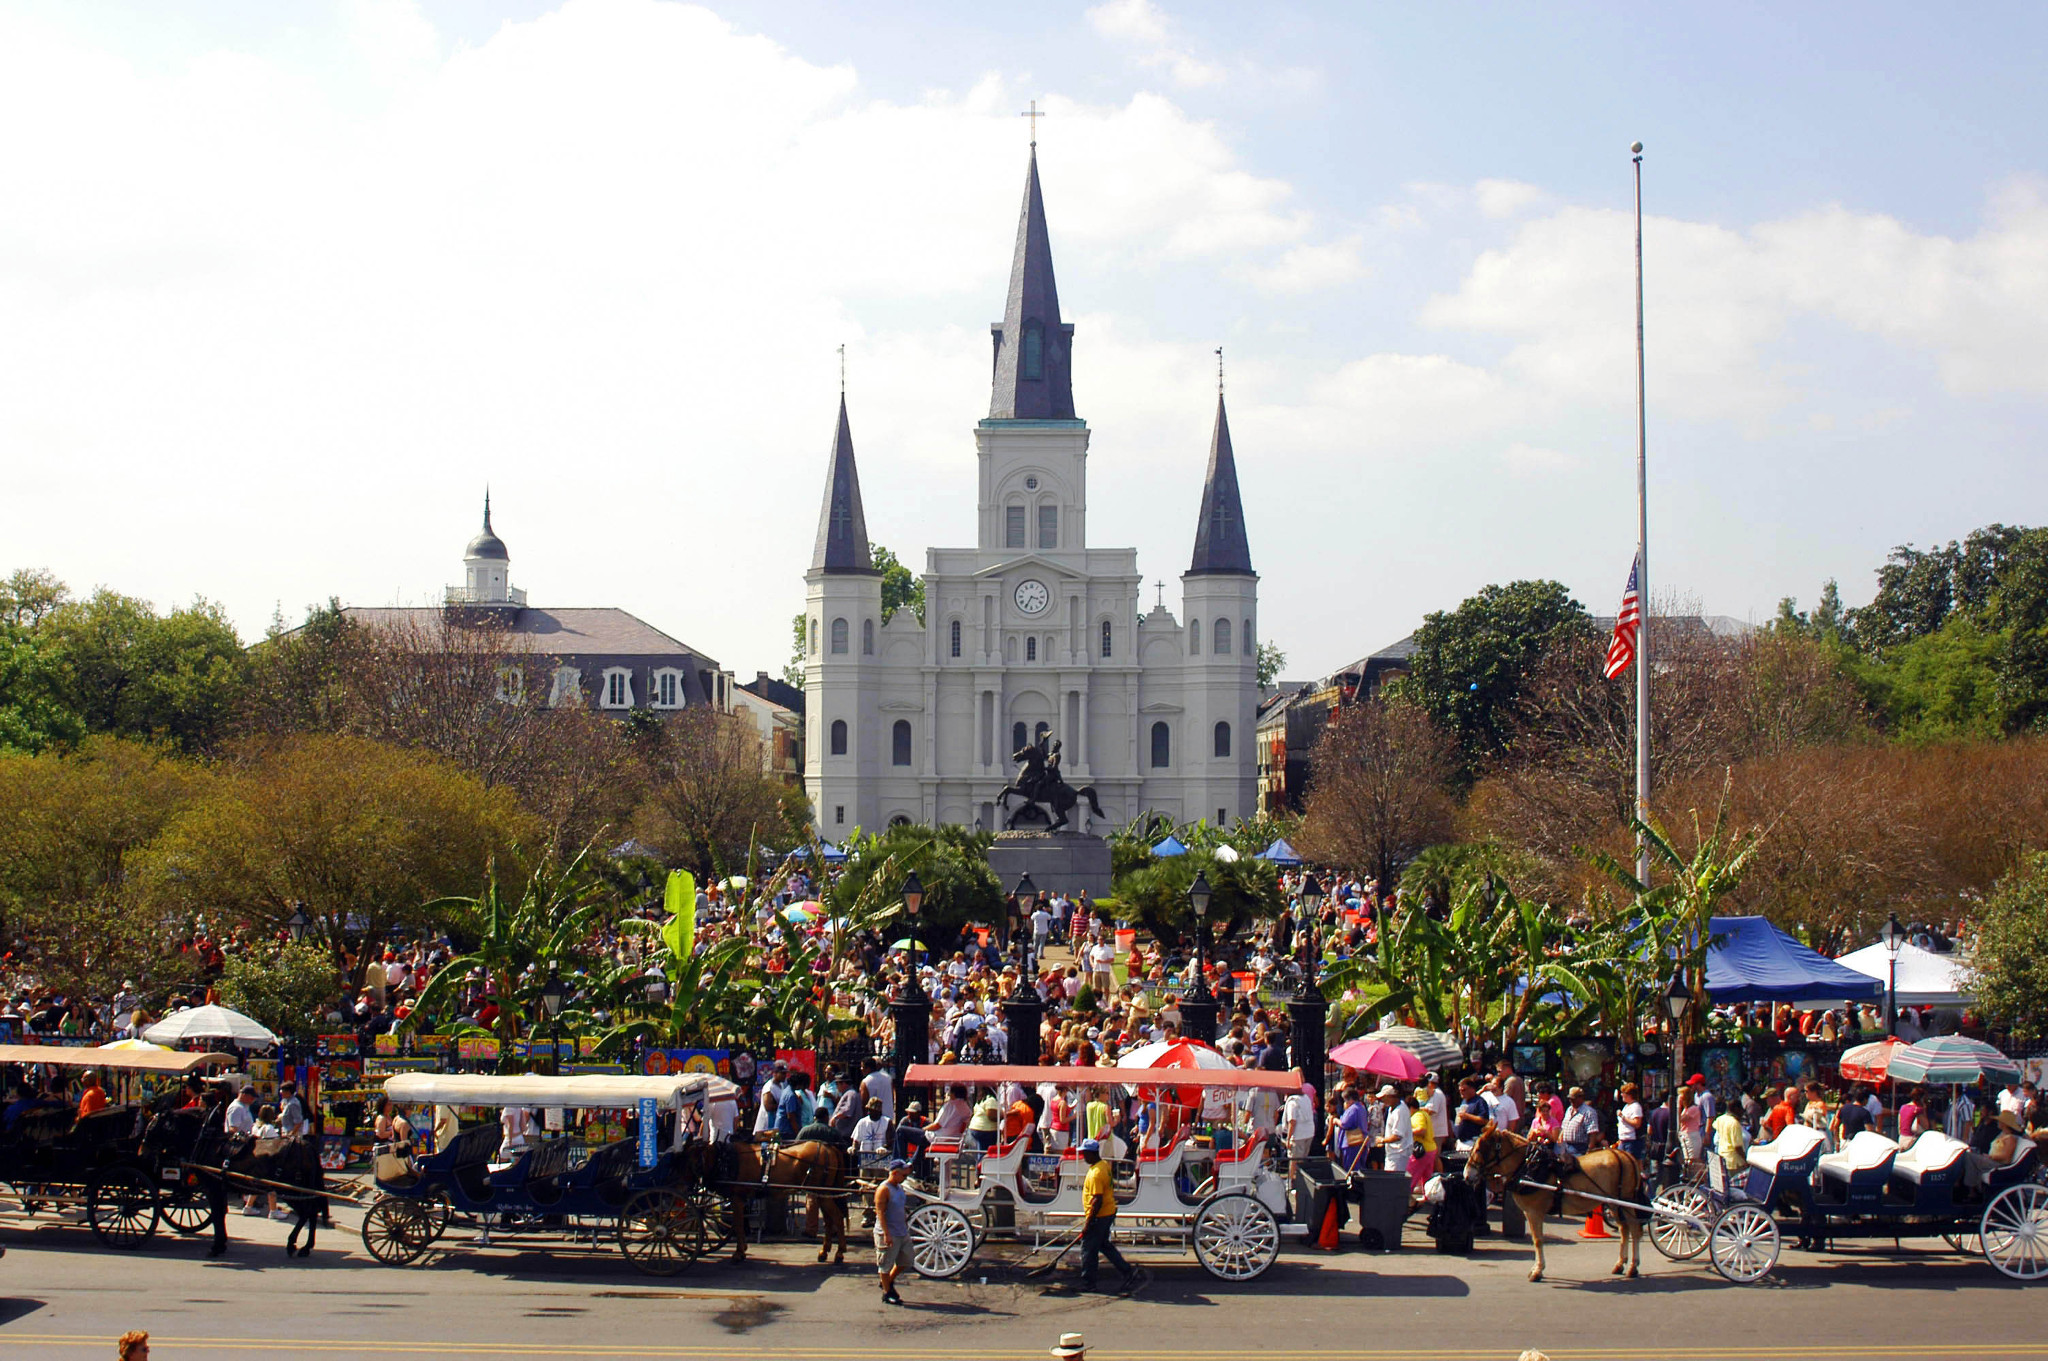 French Quarter Fest extends throughout the entire historic neighborhood, including in Jackson Square. (Photo courtesy of New Orleans Tourism Marketing)